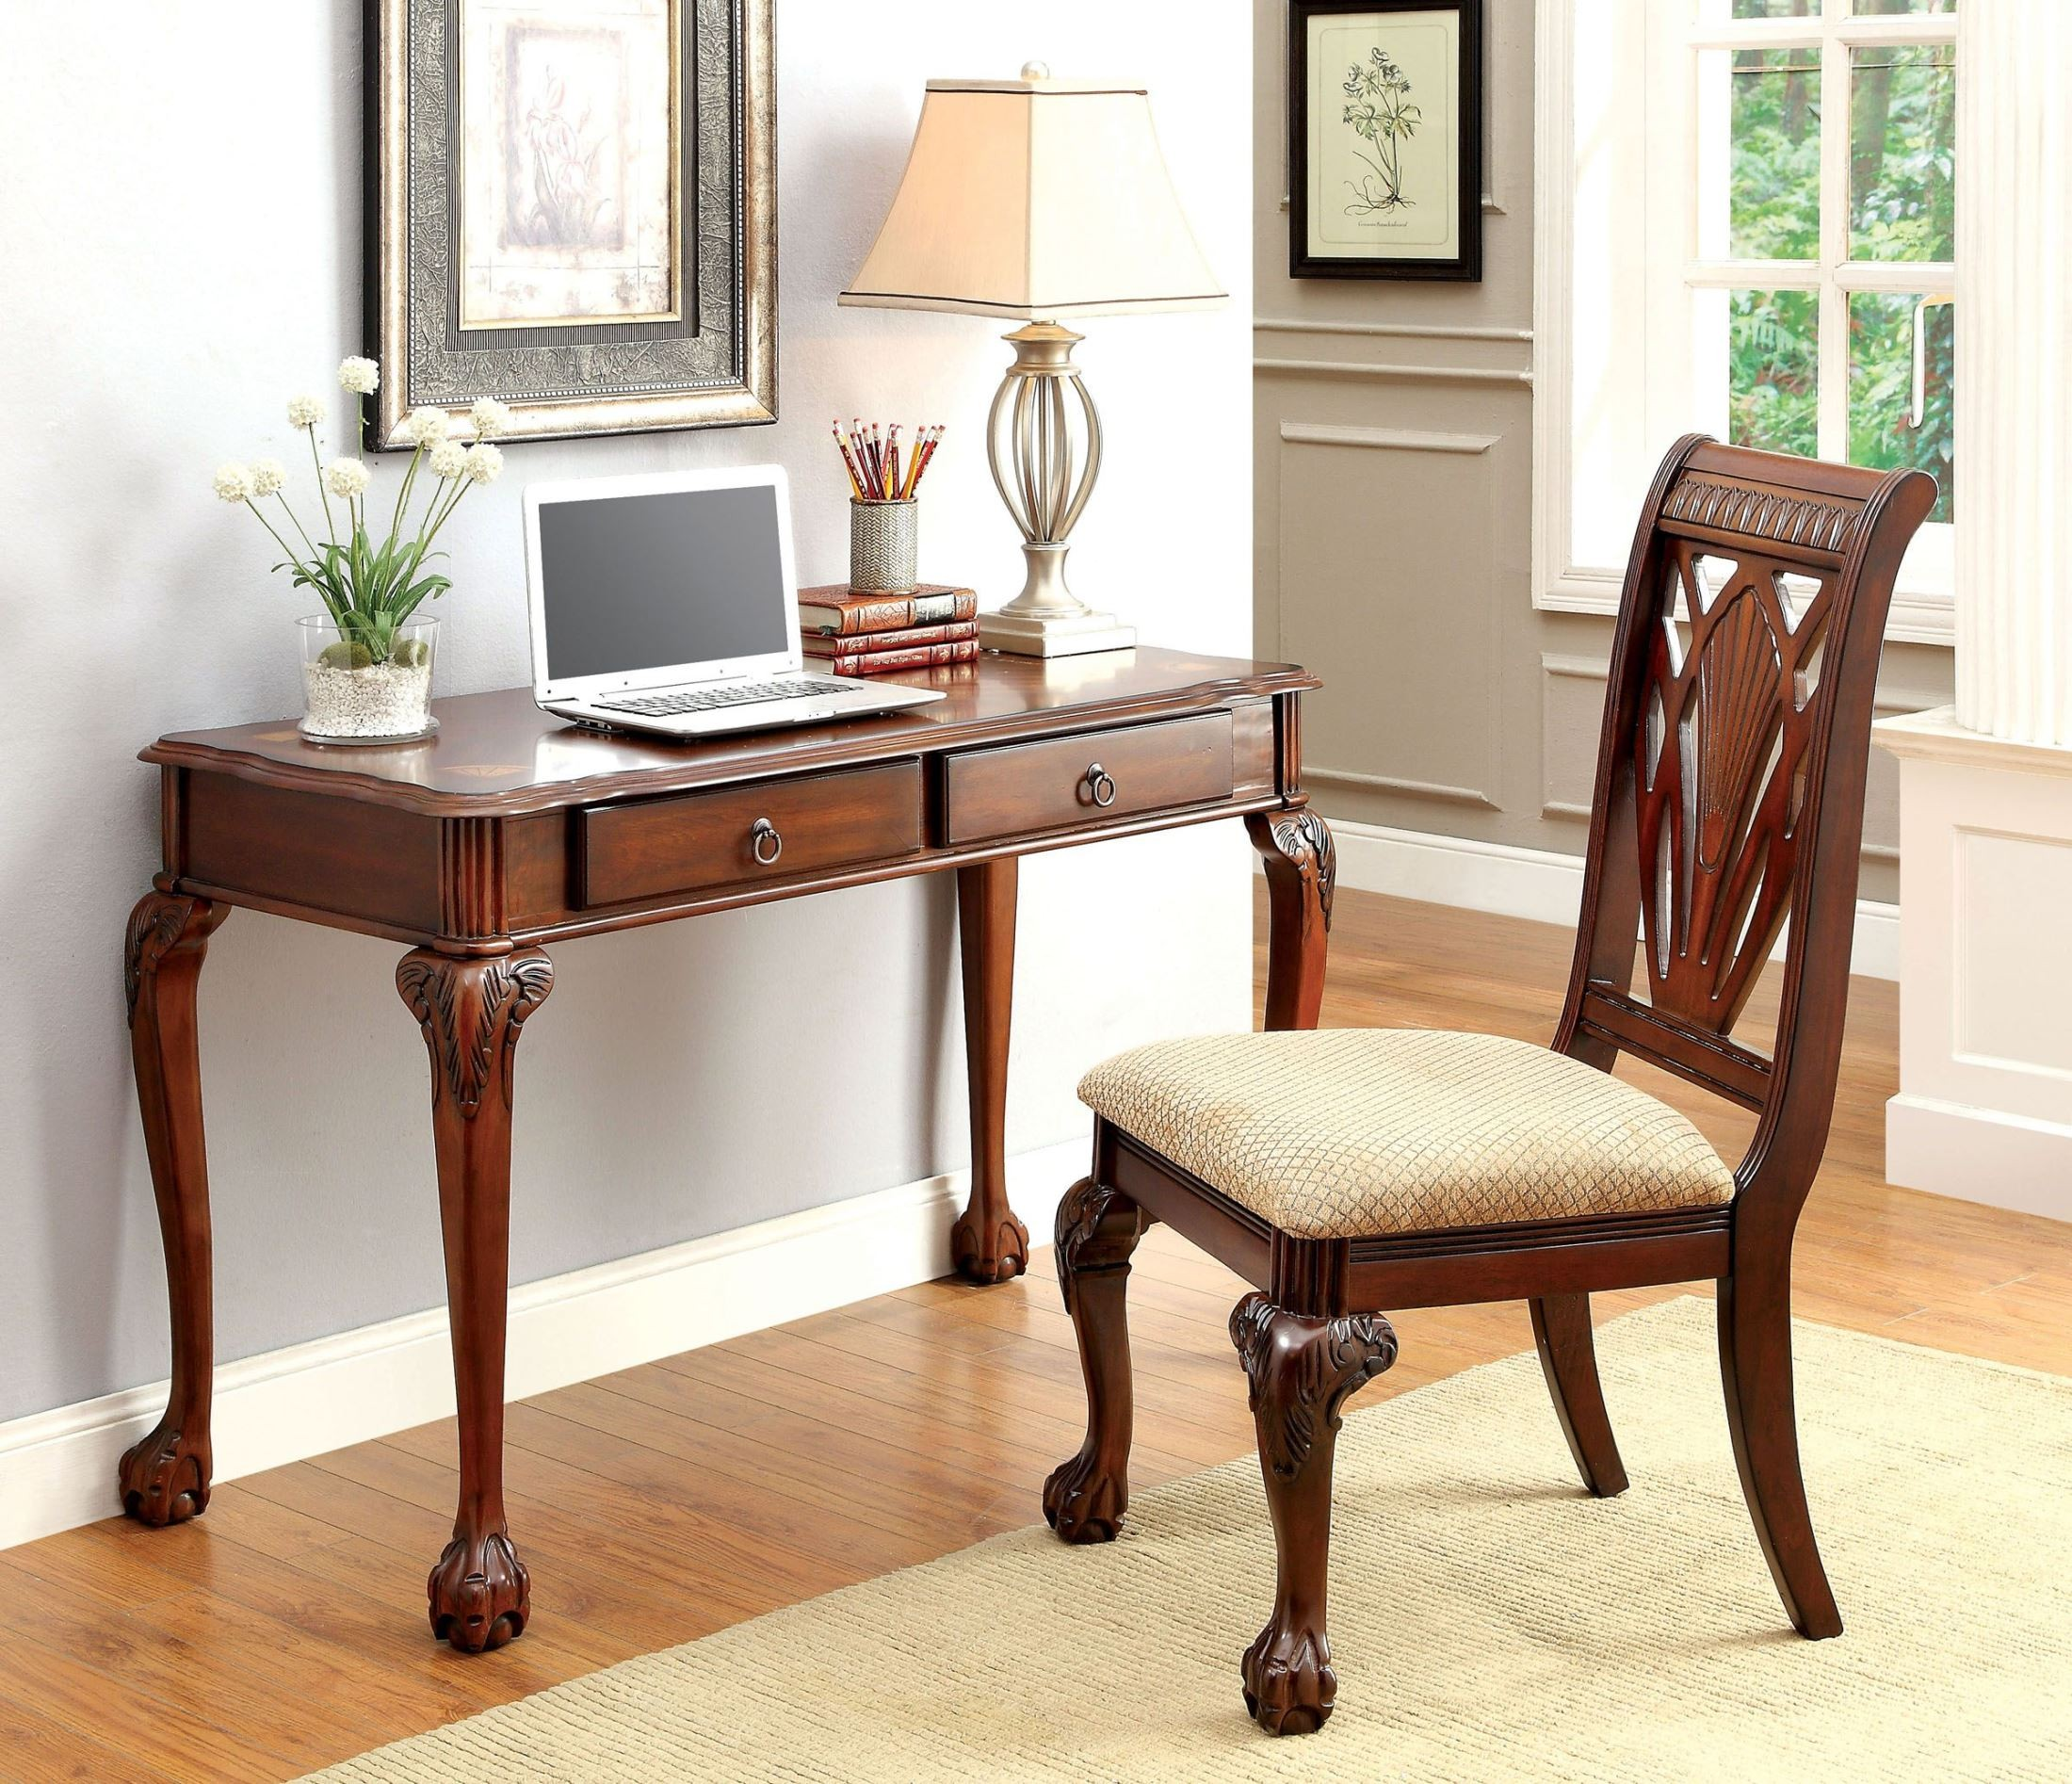 Hillsboro cherry accent desk with chair from furniture of